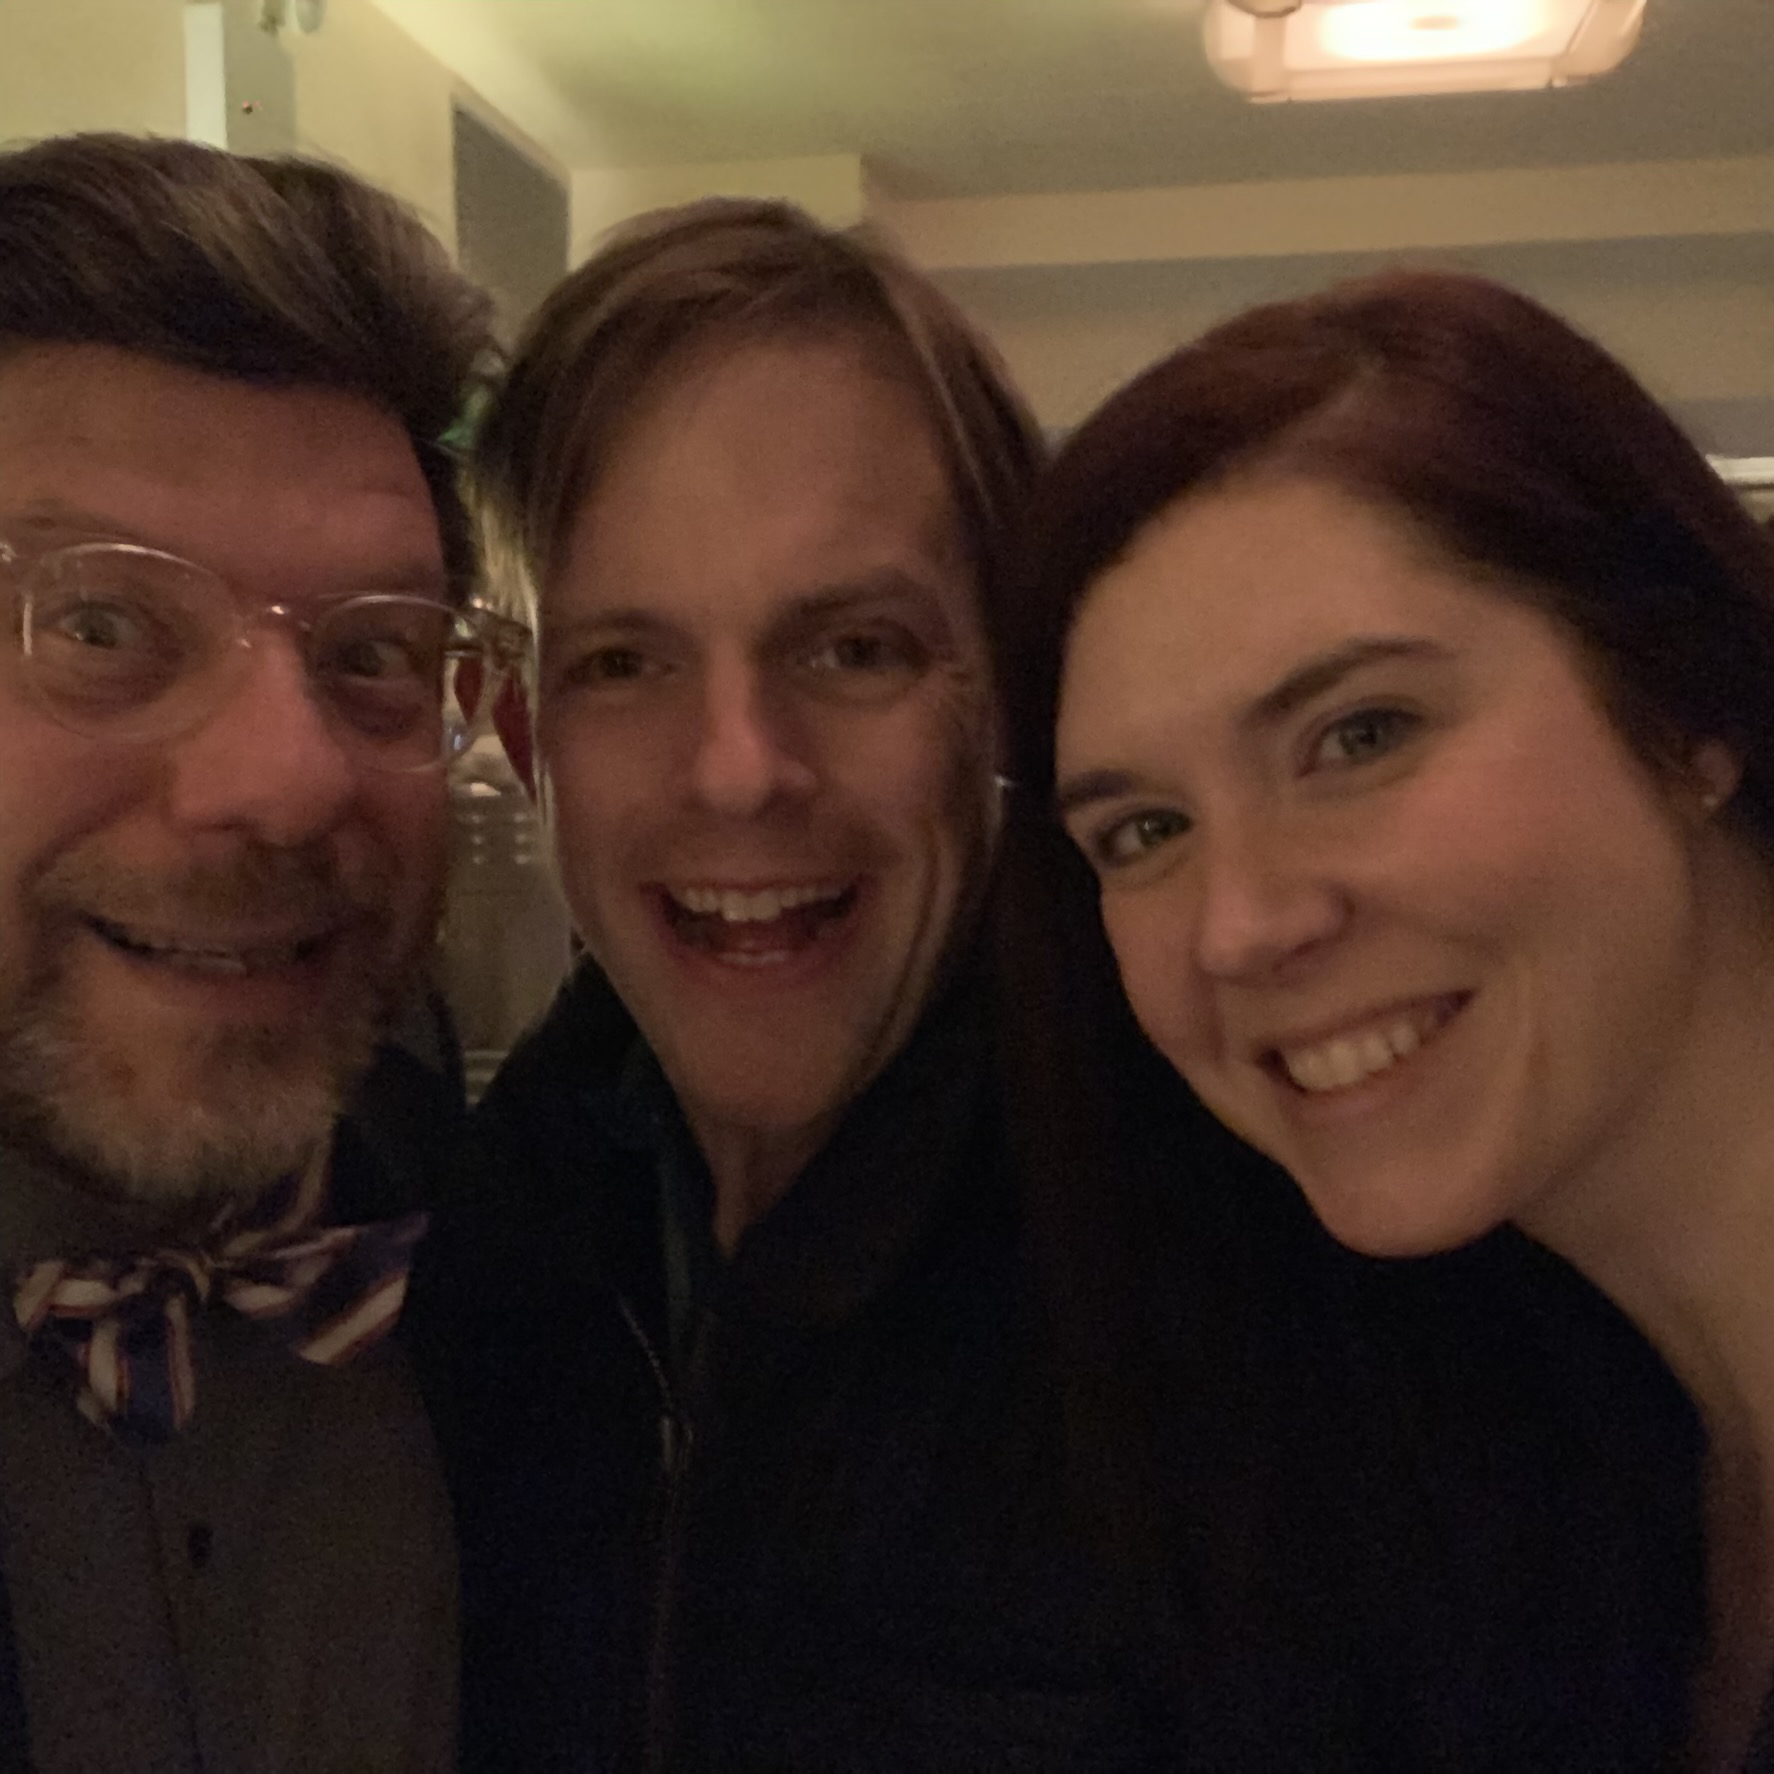 Me and the newlyweds Chas and Christina at the Café Luxembourg.